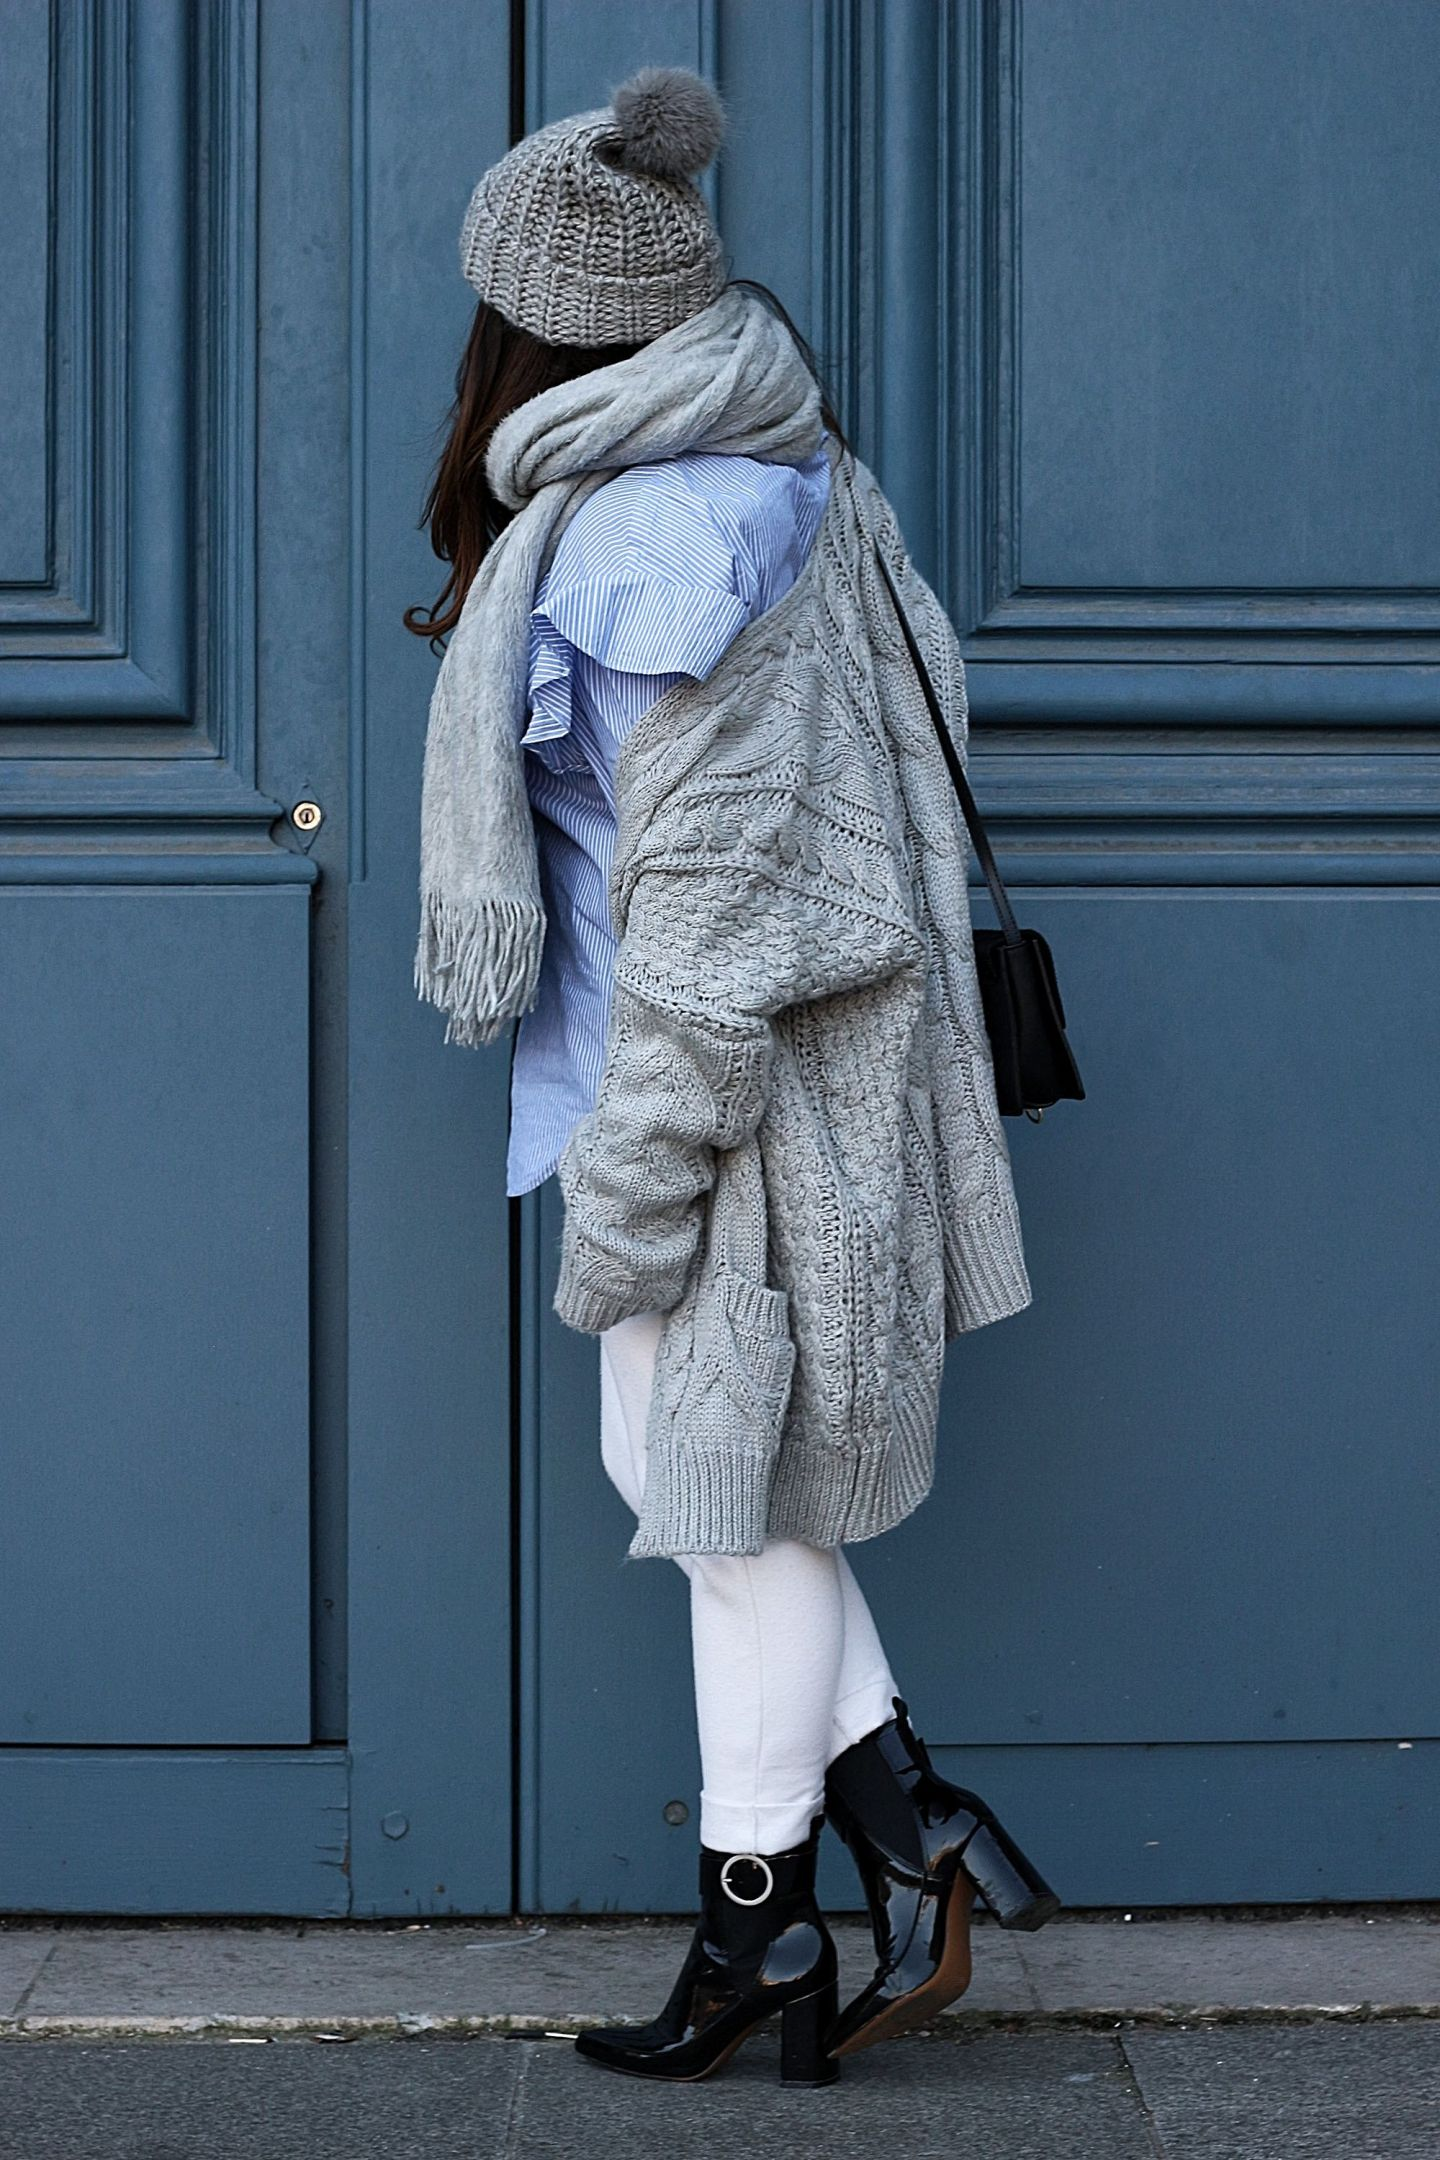 jogging zara, zara, shein, gilet grosse maille, gros gilet, h&m, bottines h&m, chemise oversize, chemise loose, chemise zara, blog mode, the green ananas, blogueuse mode, look cosy, jogging